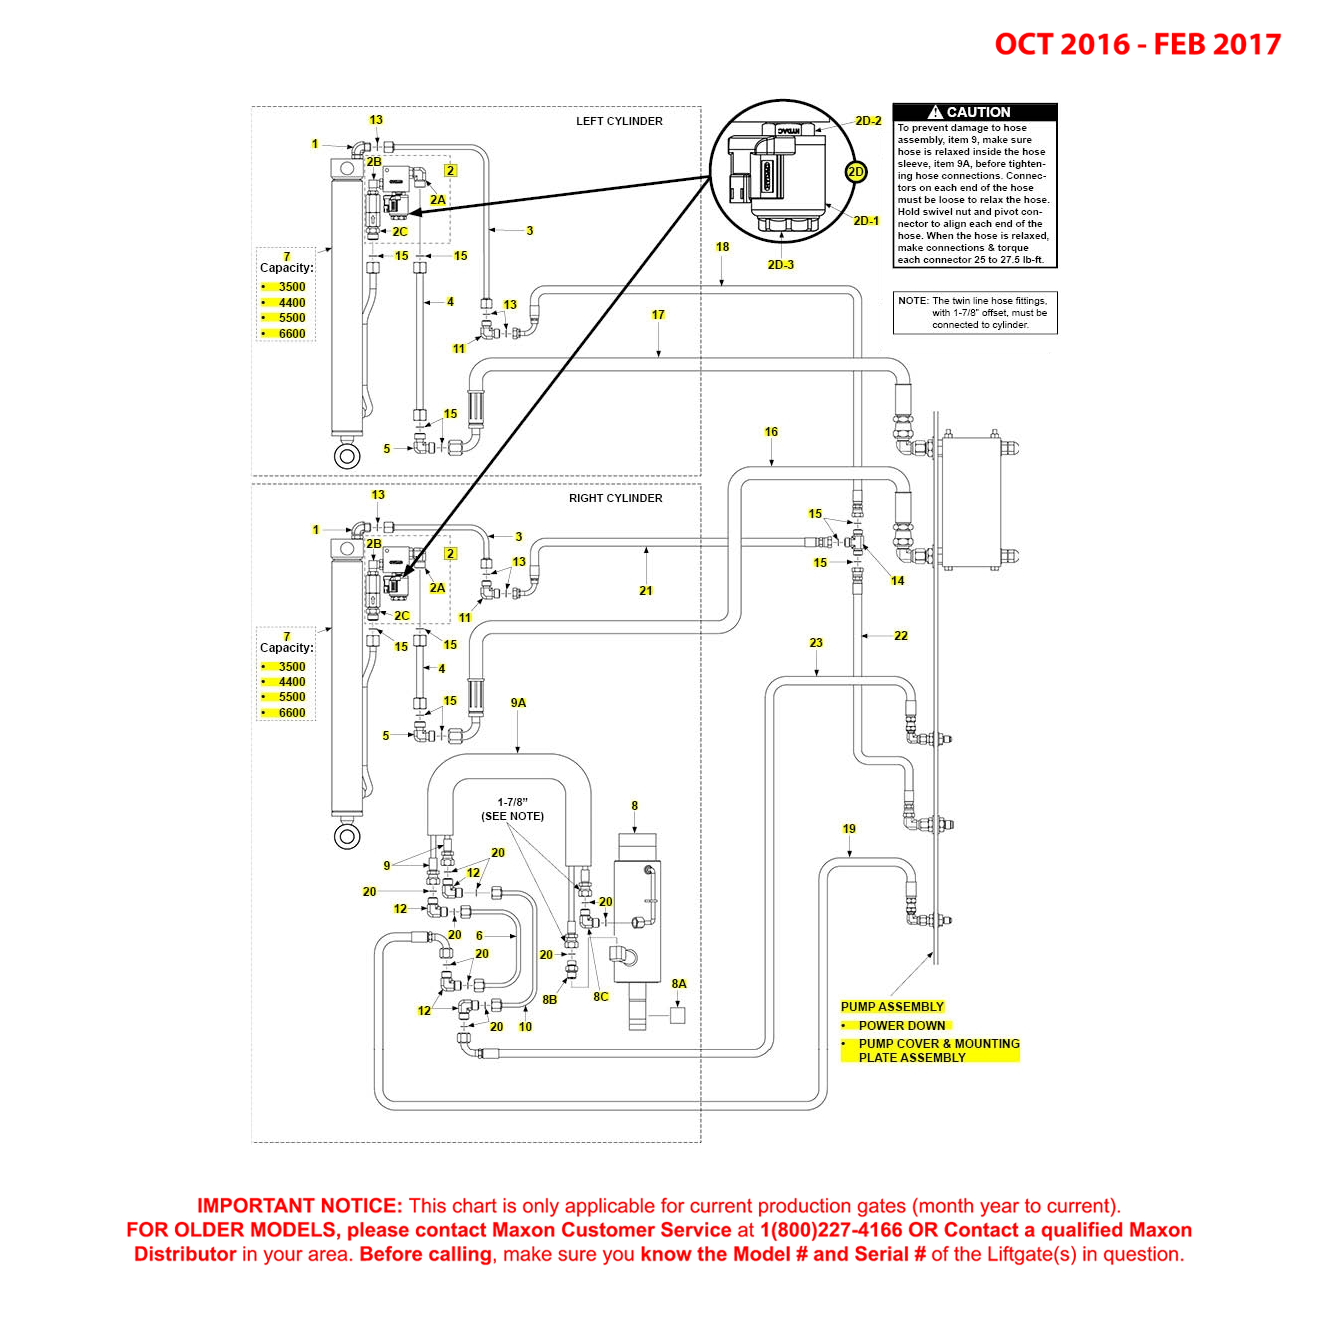 BMR (Oct 2016 - Feb 2017) Power Down MTE Hydraulics Systems Diagram